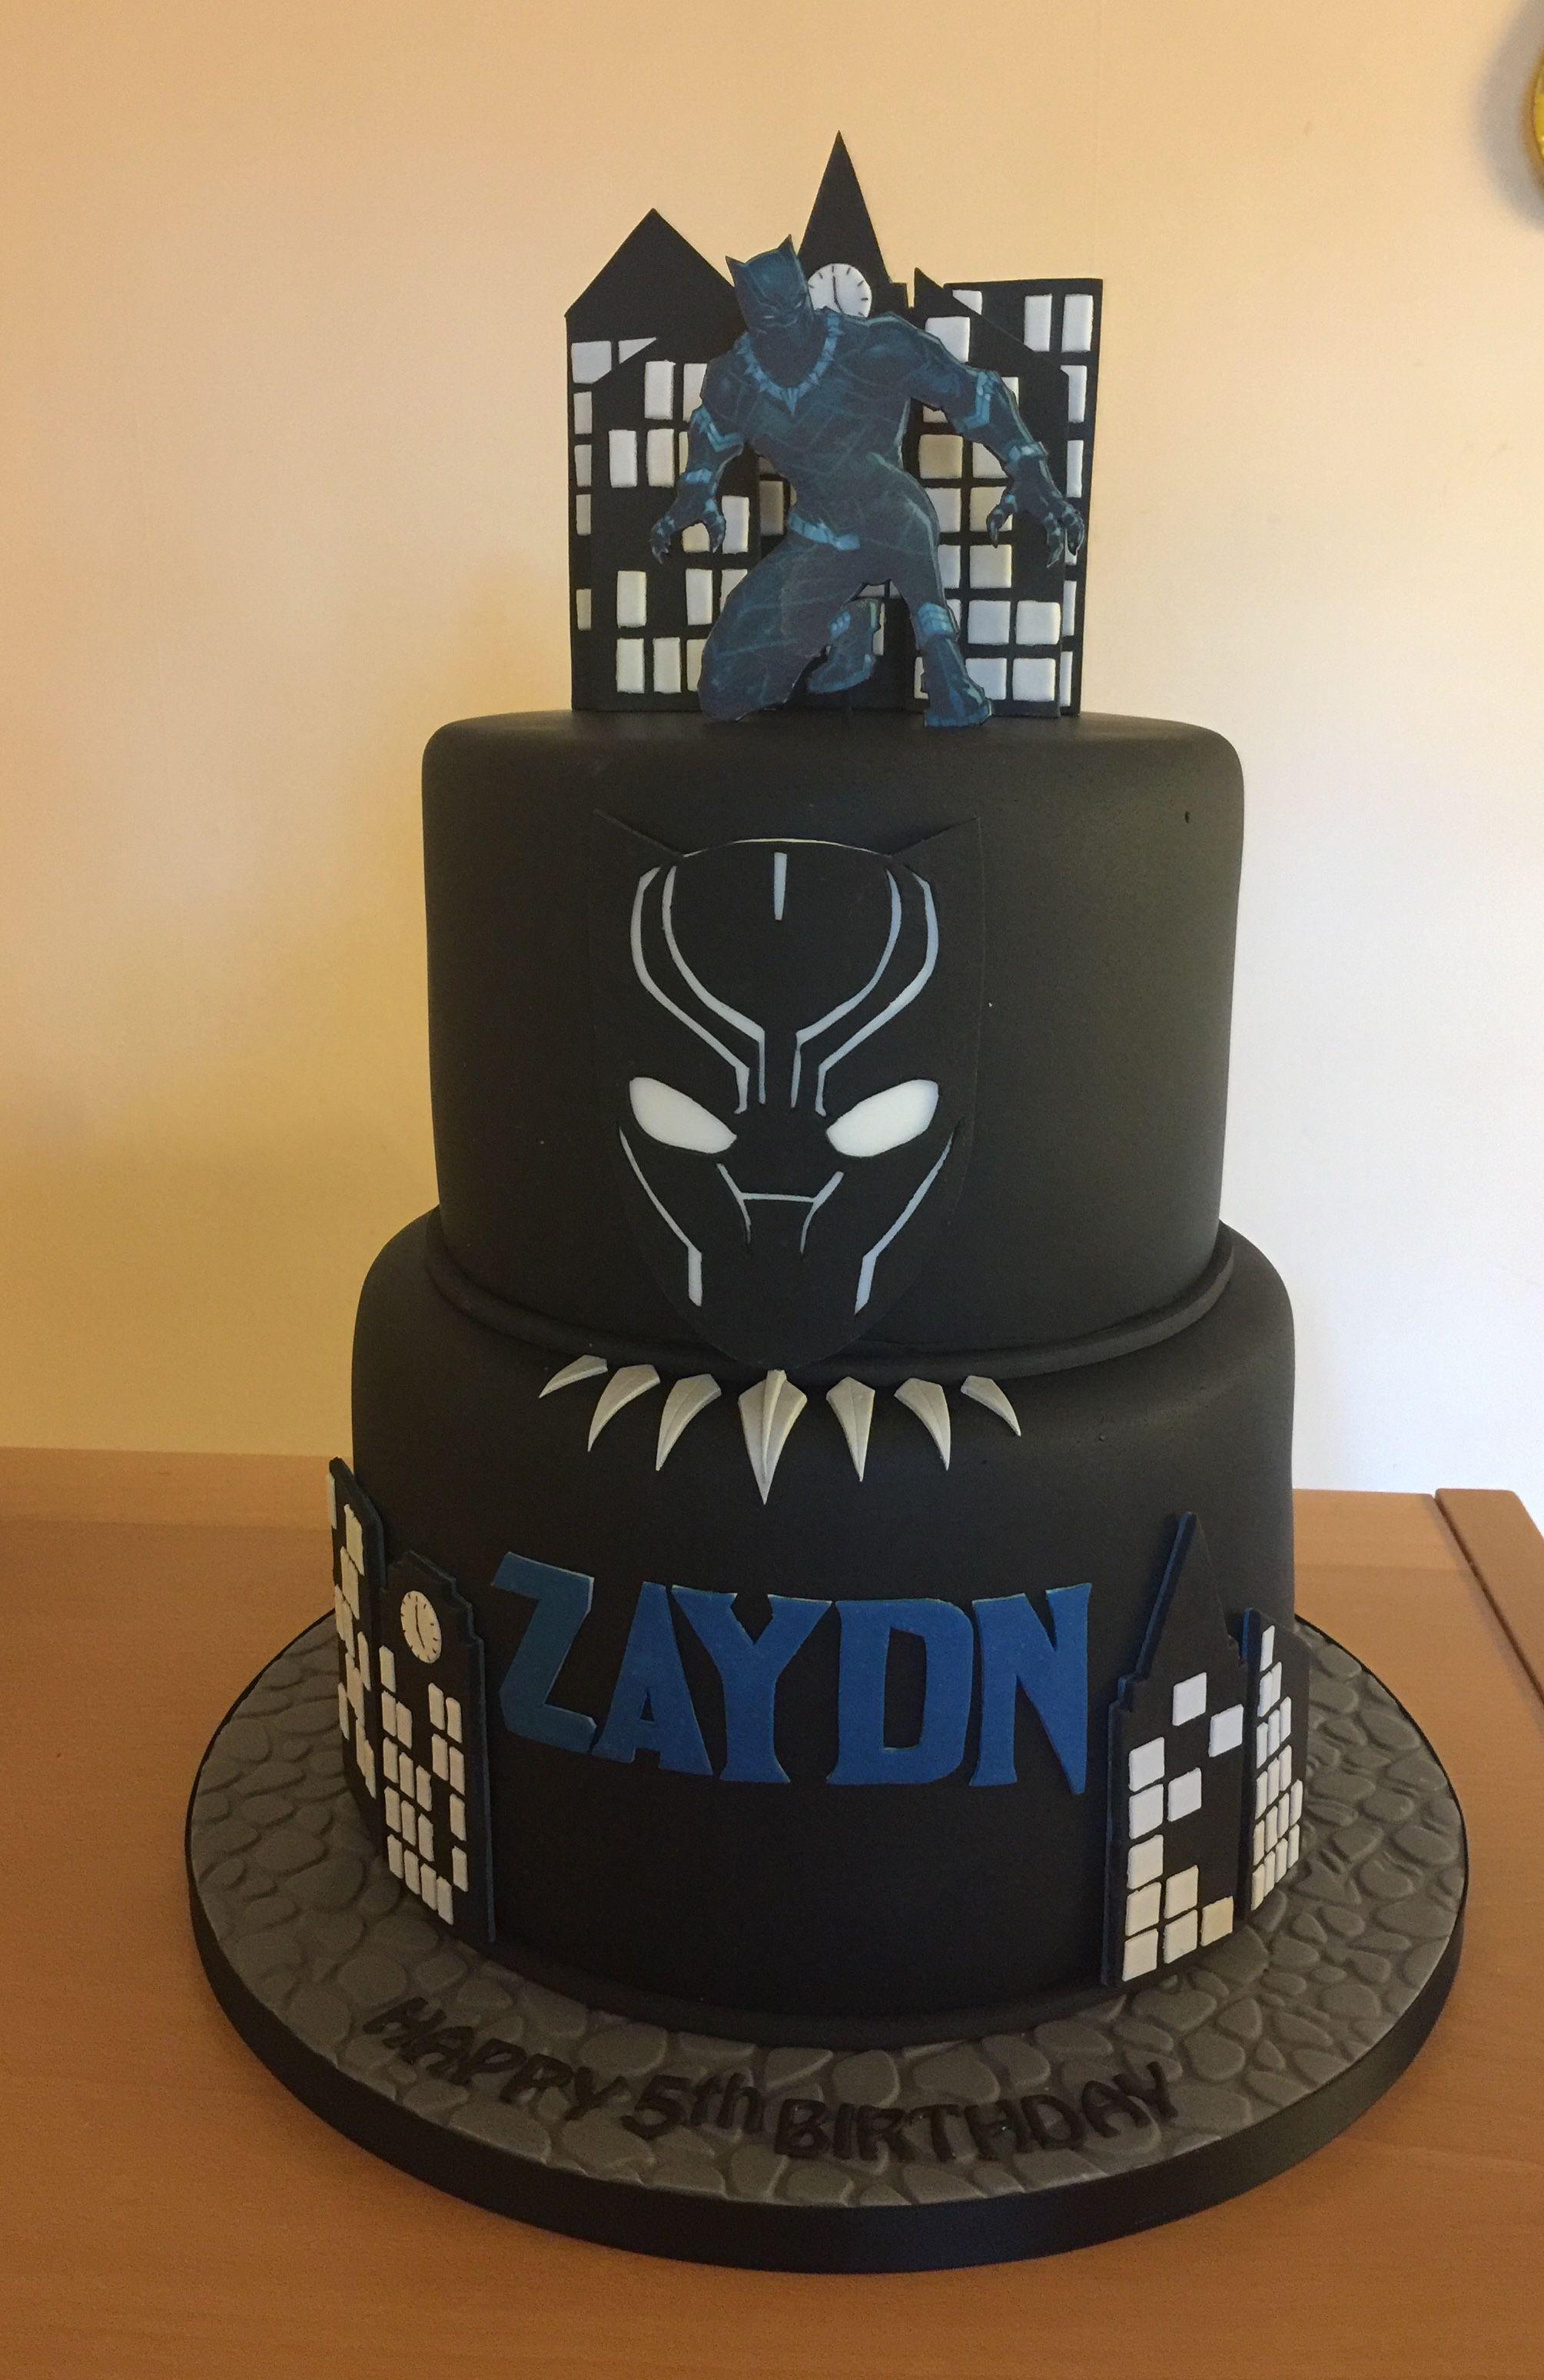 17+ Black panther cake topper uk ideas in 2021